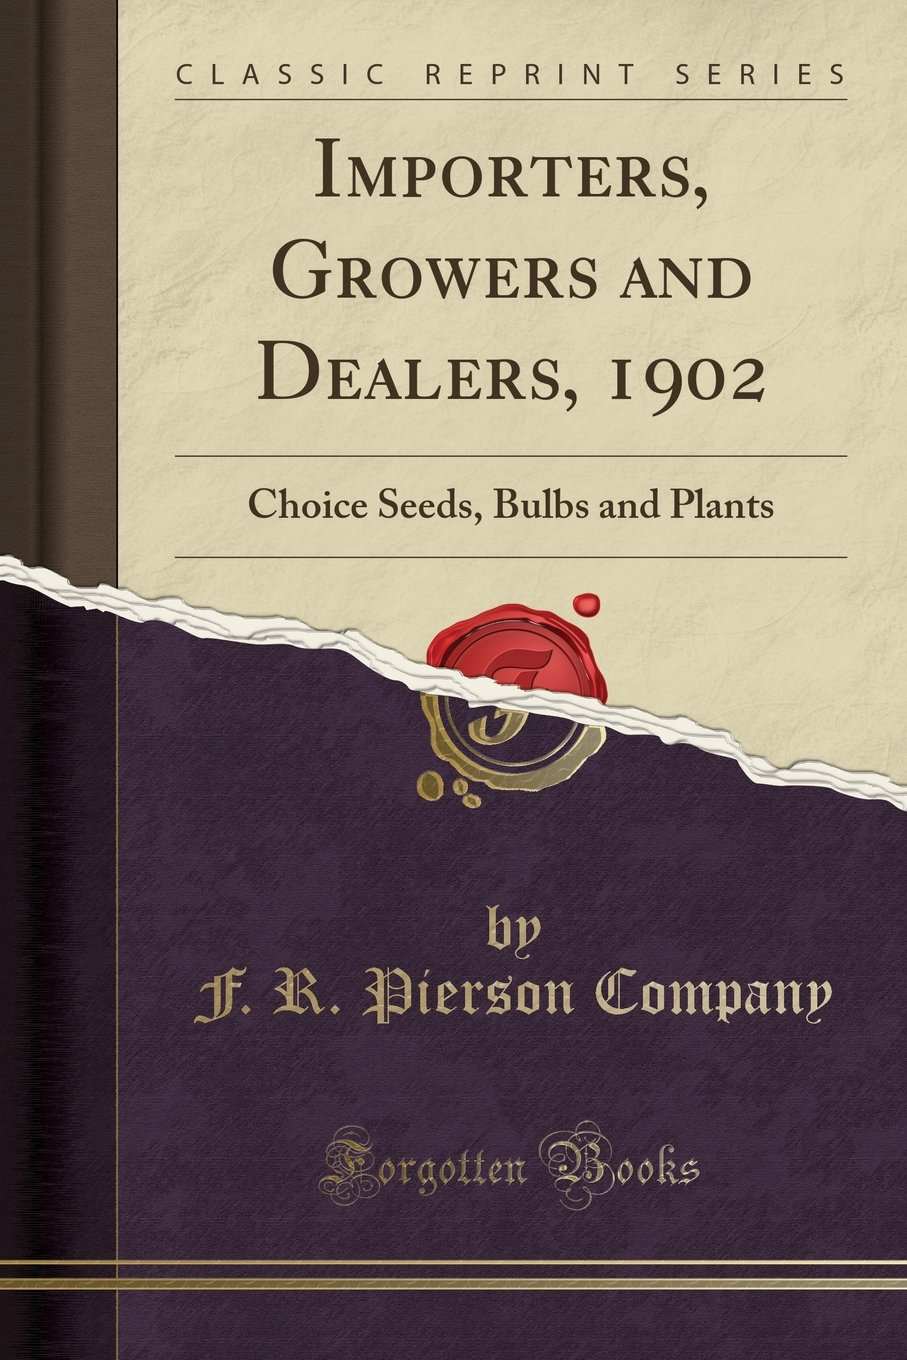 Importers, Growers and Dealers, 1902: Choice Seeds, Bulbs